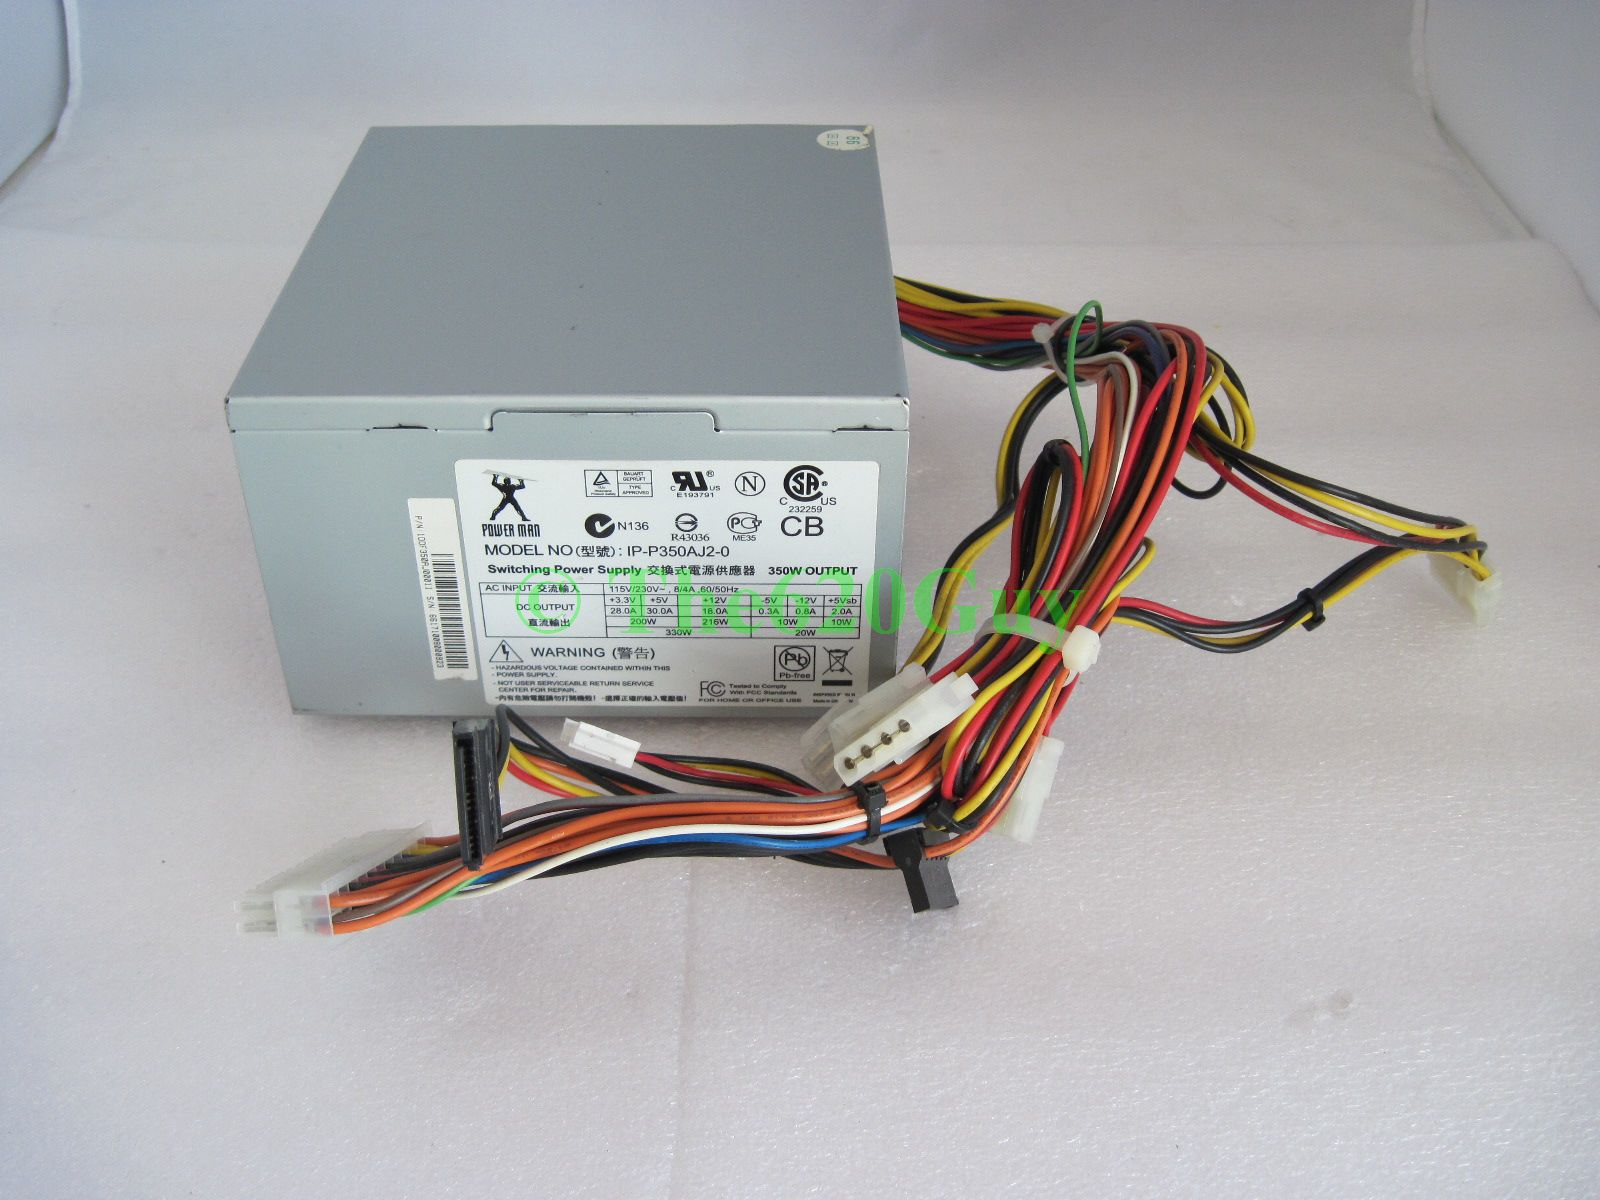 2 Watt Switching Power Supply